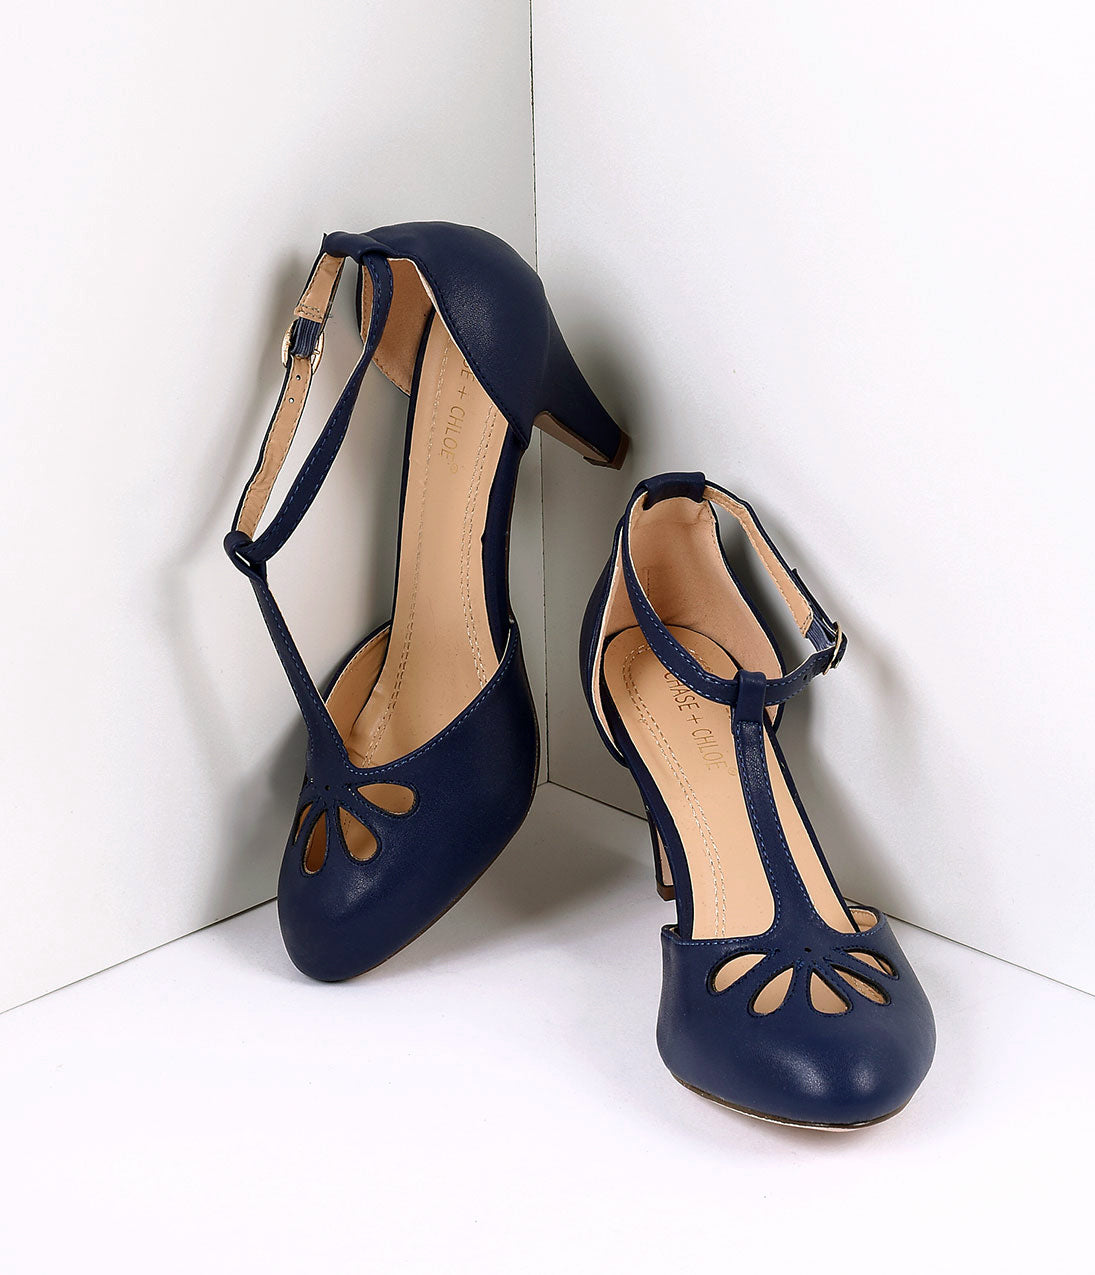 1950s Shoe Styles: Heels, Flats, Sandals, Saddles Shoes Navy Blue Pleather Cutout Kimmy T-Strap Heels $44.00 AT vintagedancer.com